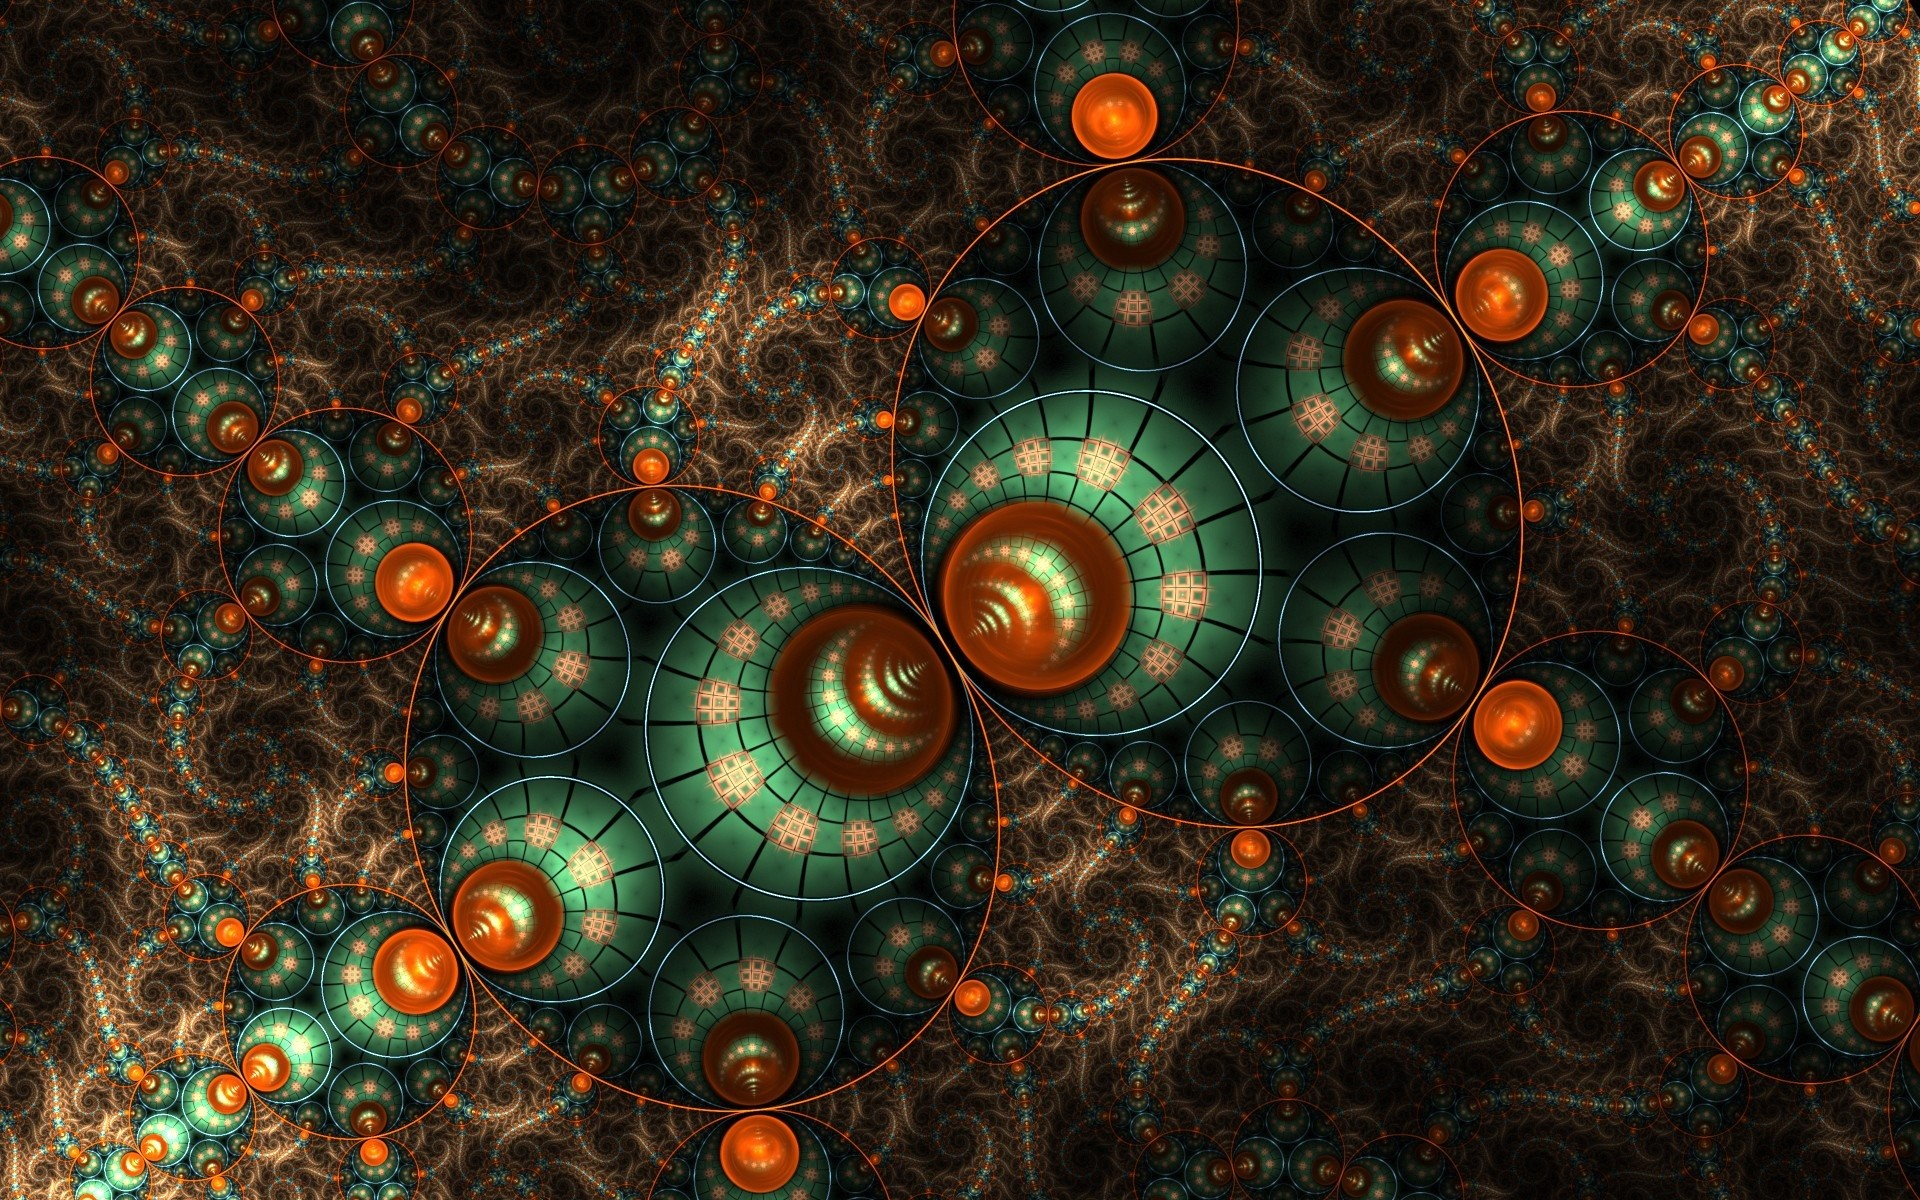 1920x1200 Straddle the Line Between Maths and Art with These Fractal Wallpapers